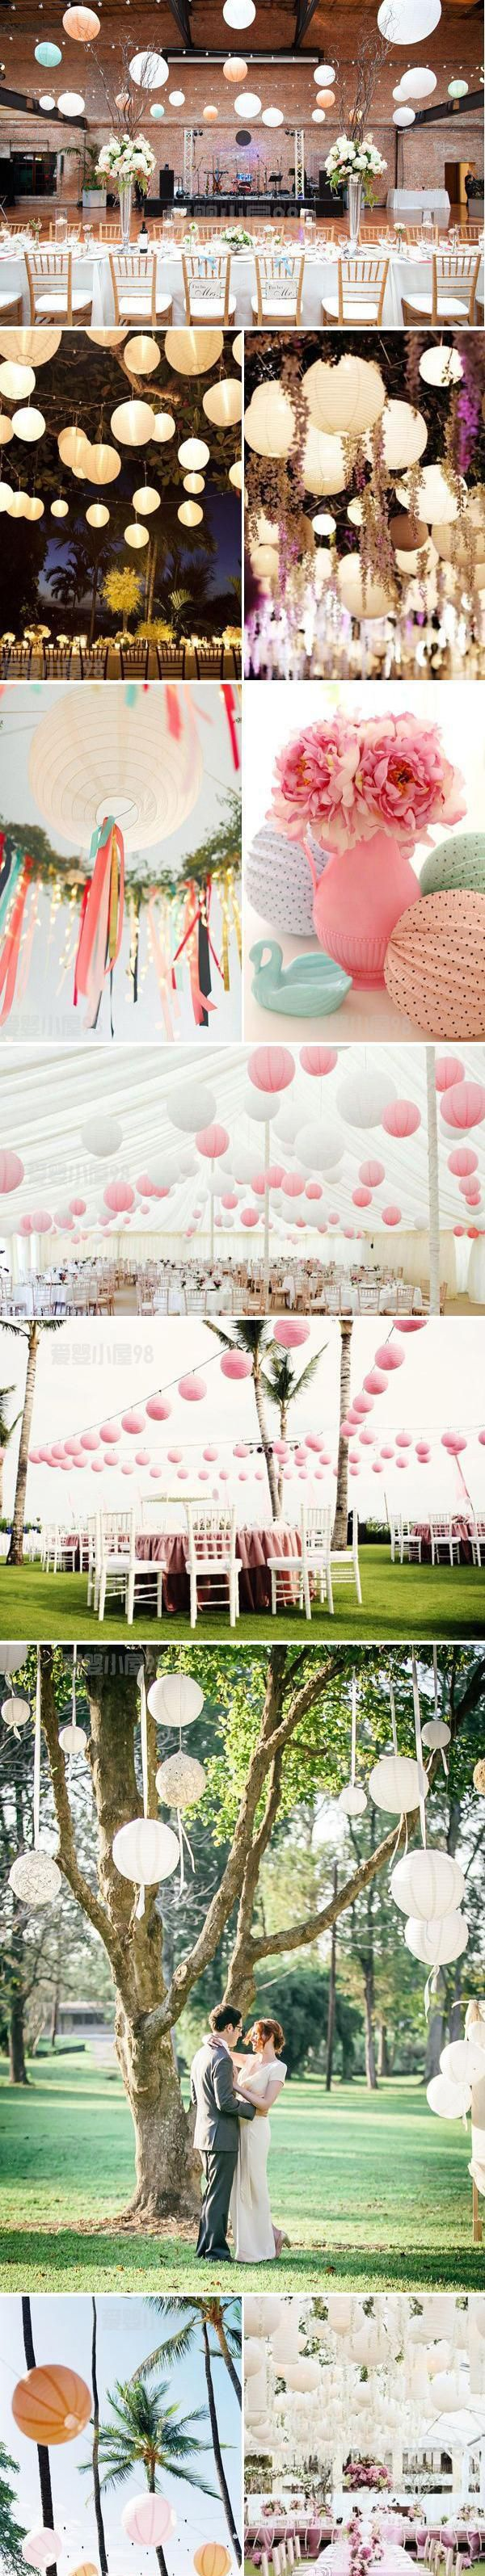 Free shipping 10pcs/lot 8''(20cm) Chinese paper lantern paper lamp wedding decoration 20 colors for choosing wedding lantern-inEvent & Party Supplies from Home, Kitchen & Garden on Aliexpress.com | Alibaba Group